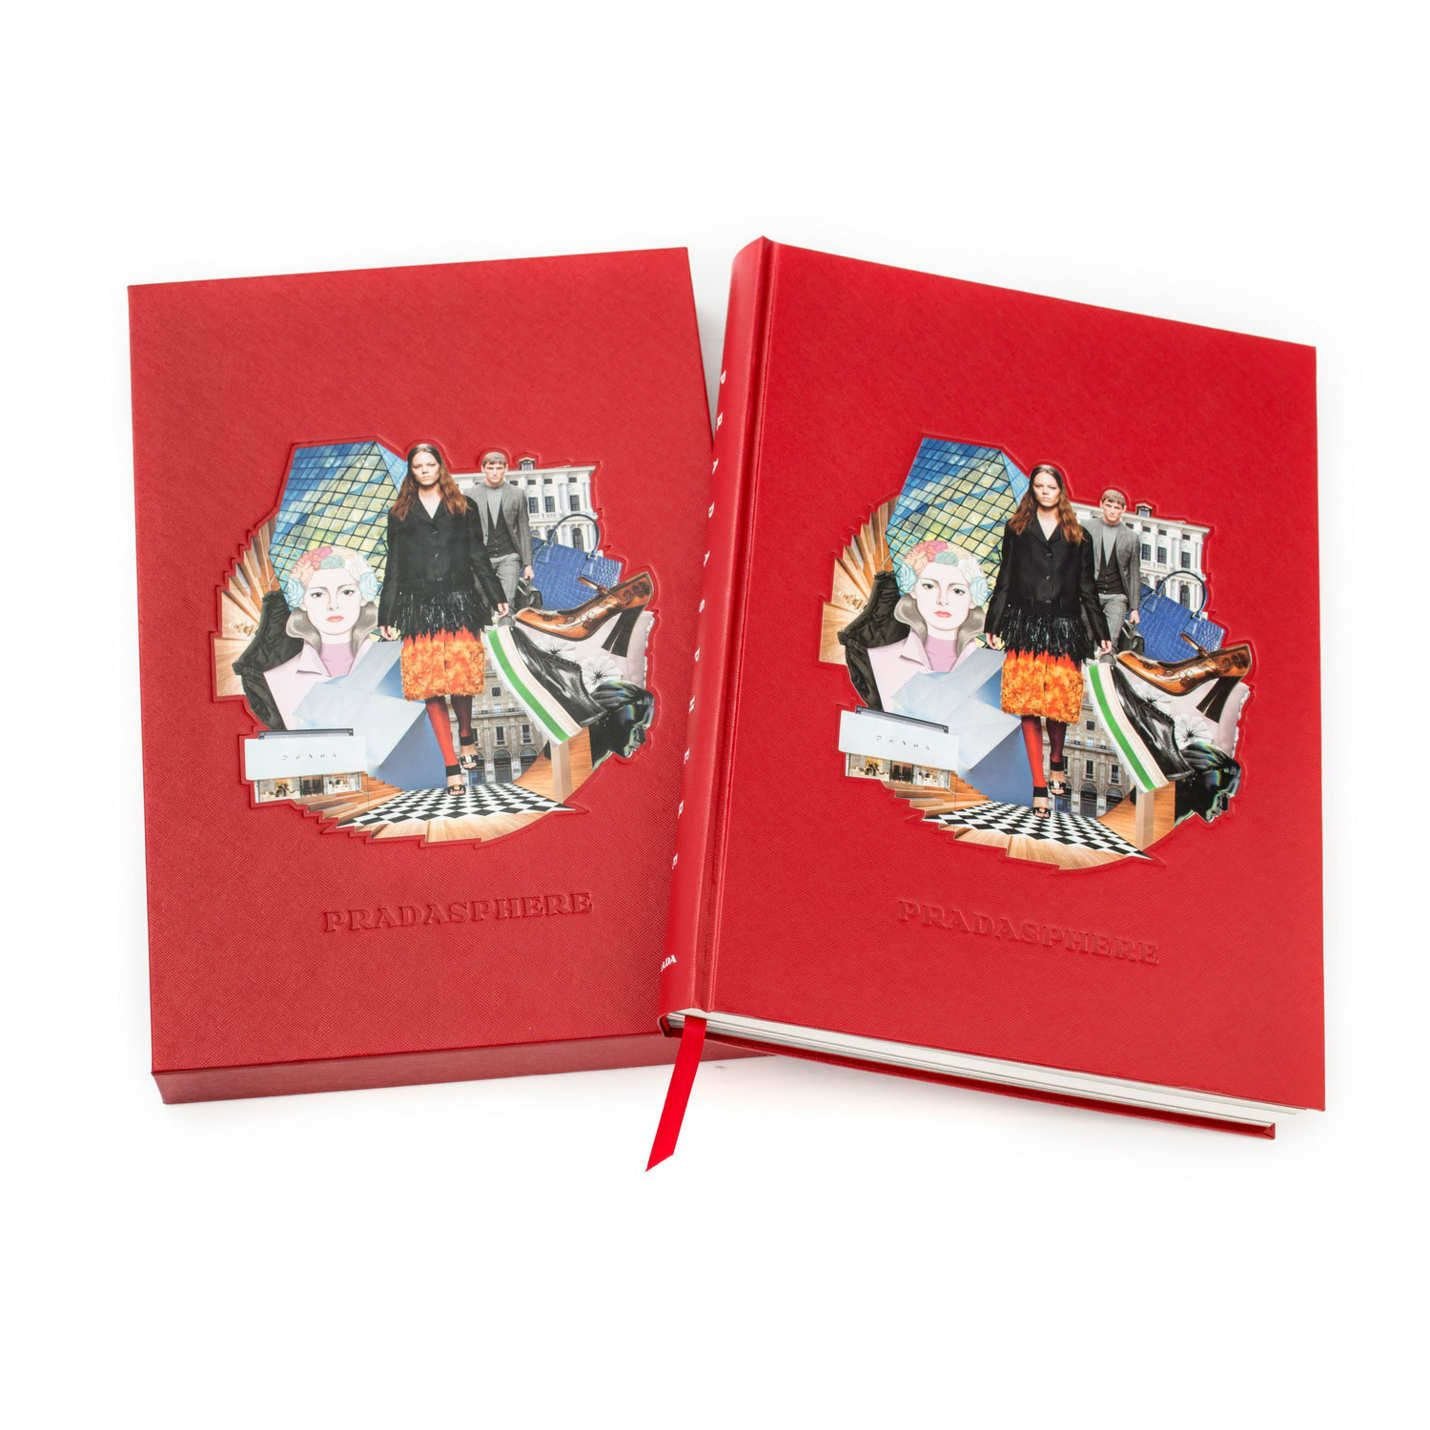 gucci coffee table book used